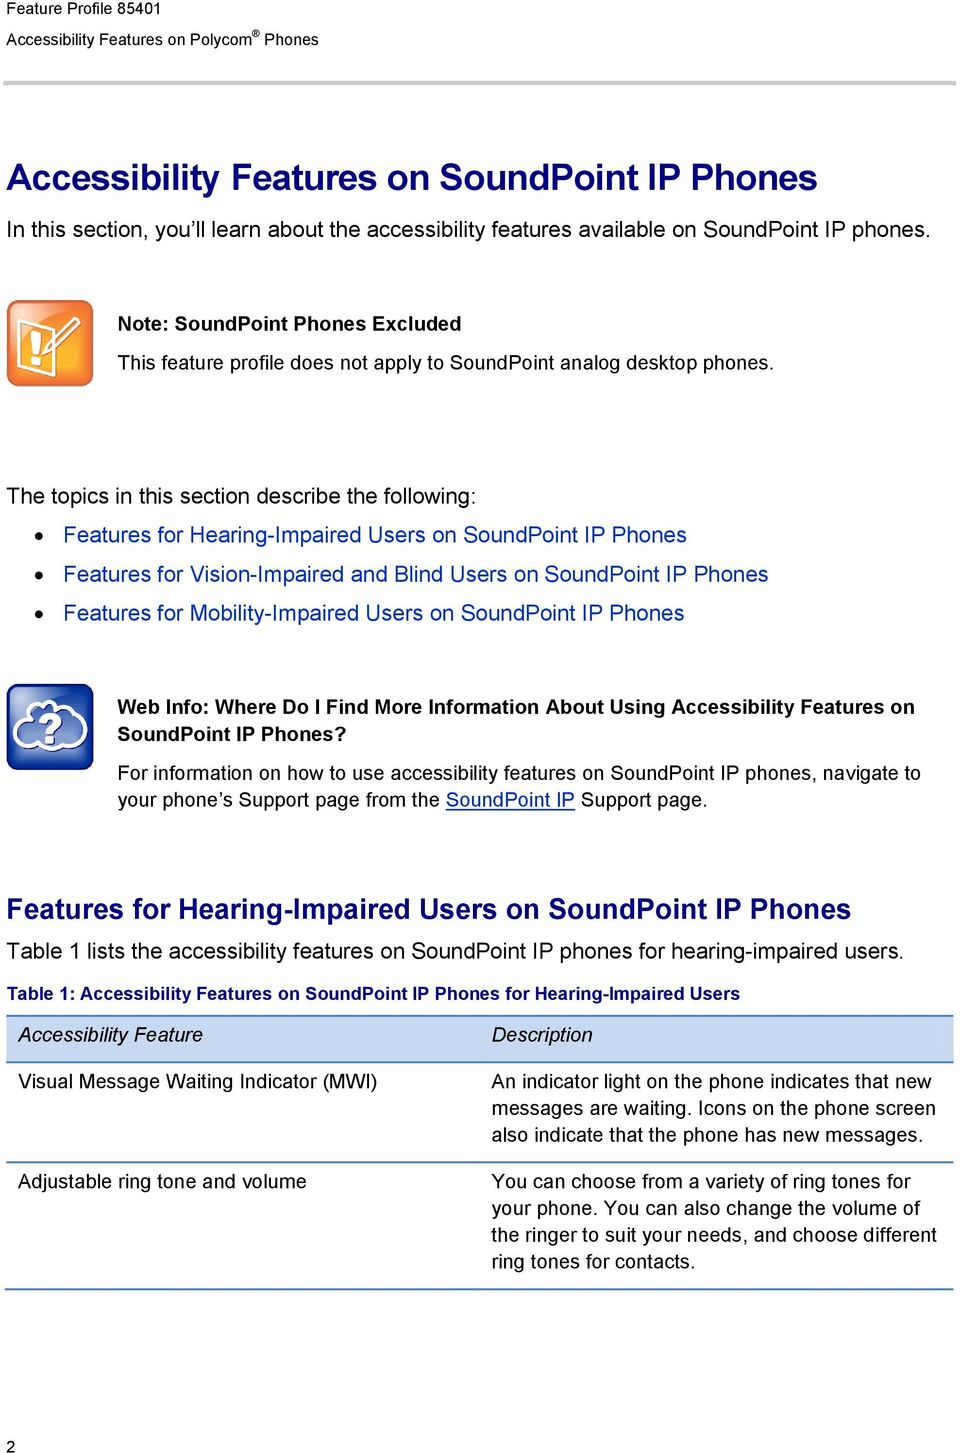 The topics in this section describe the following: Features for Hearing-Impaired Users on SoundPoint IP Phones Features for Vision-Impaired and Blind Users on SoundPoint IP Phones Features for